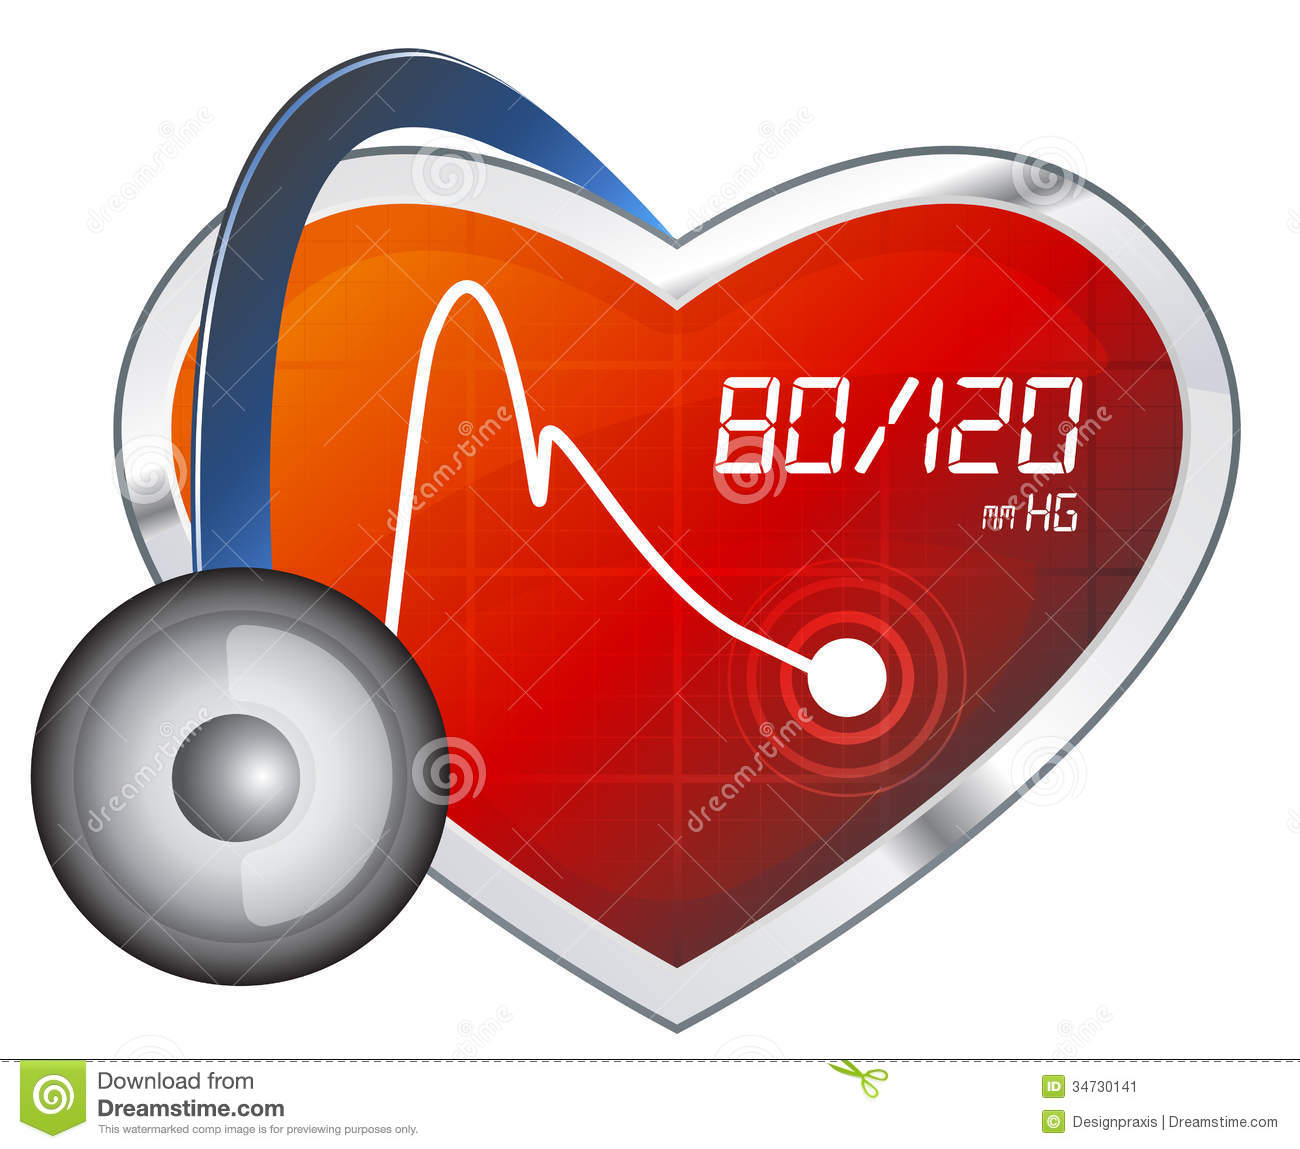 Blood Pressure Monitoring Illustration S-Blood Pressure Monitoring Illustration Stock Image Image 34730141-16